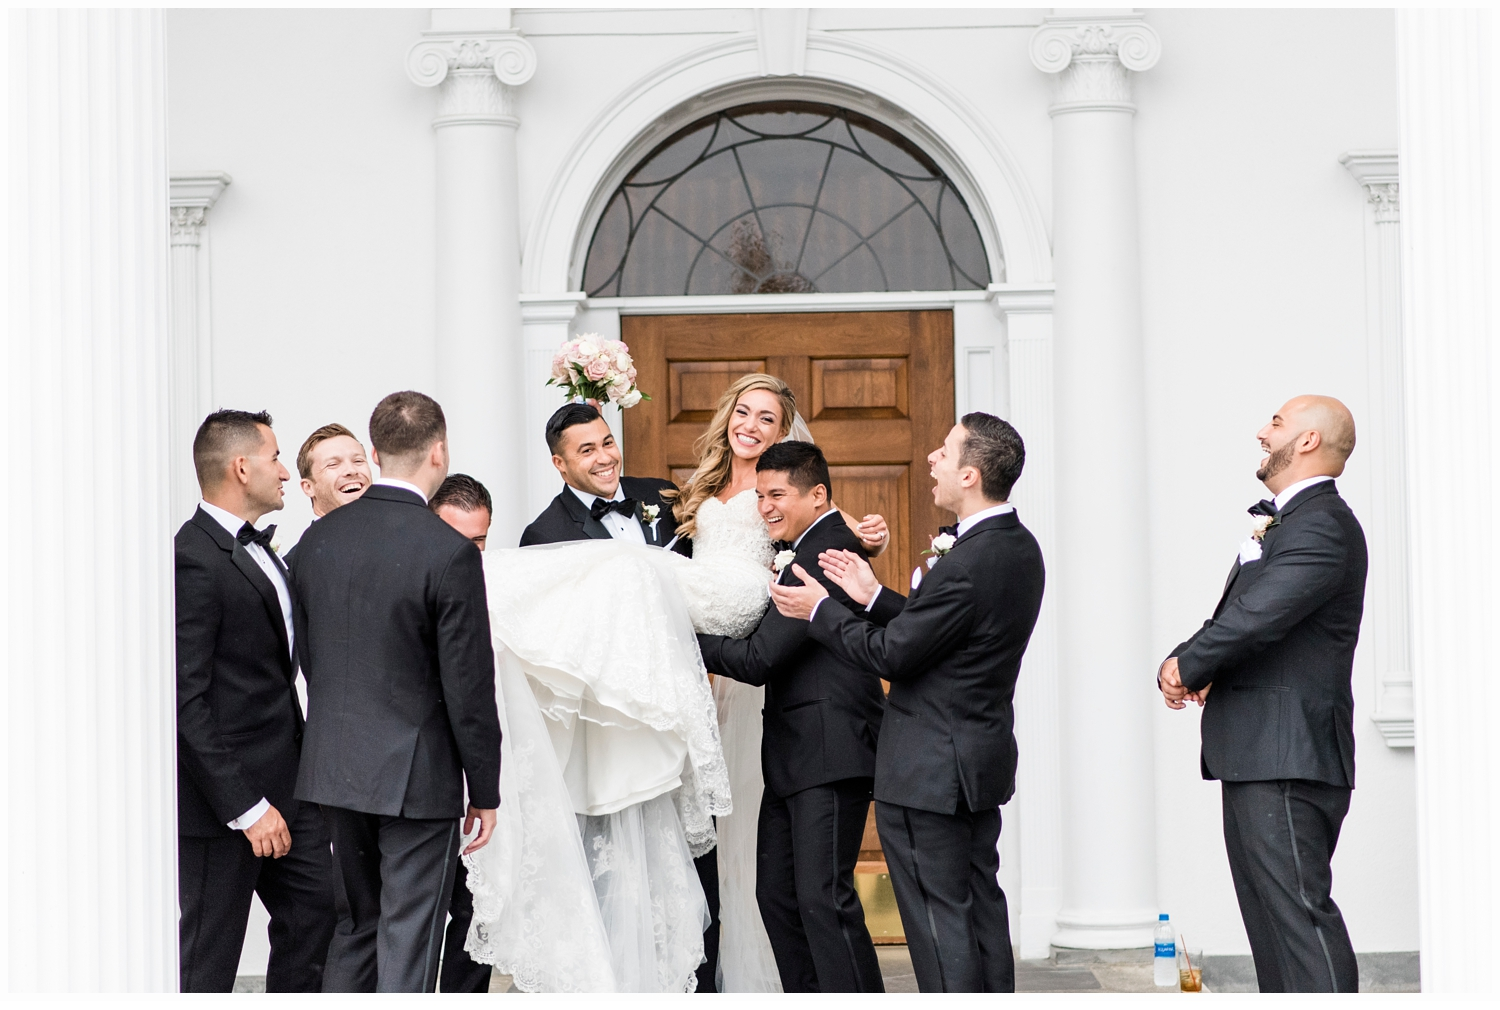 groomsmen lifting bride up in the air